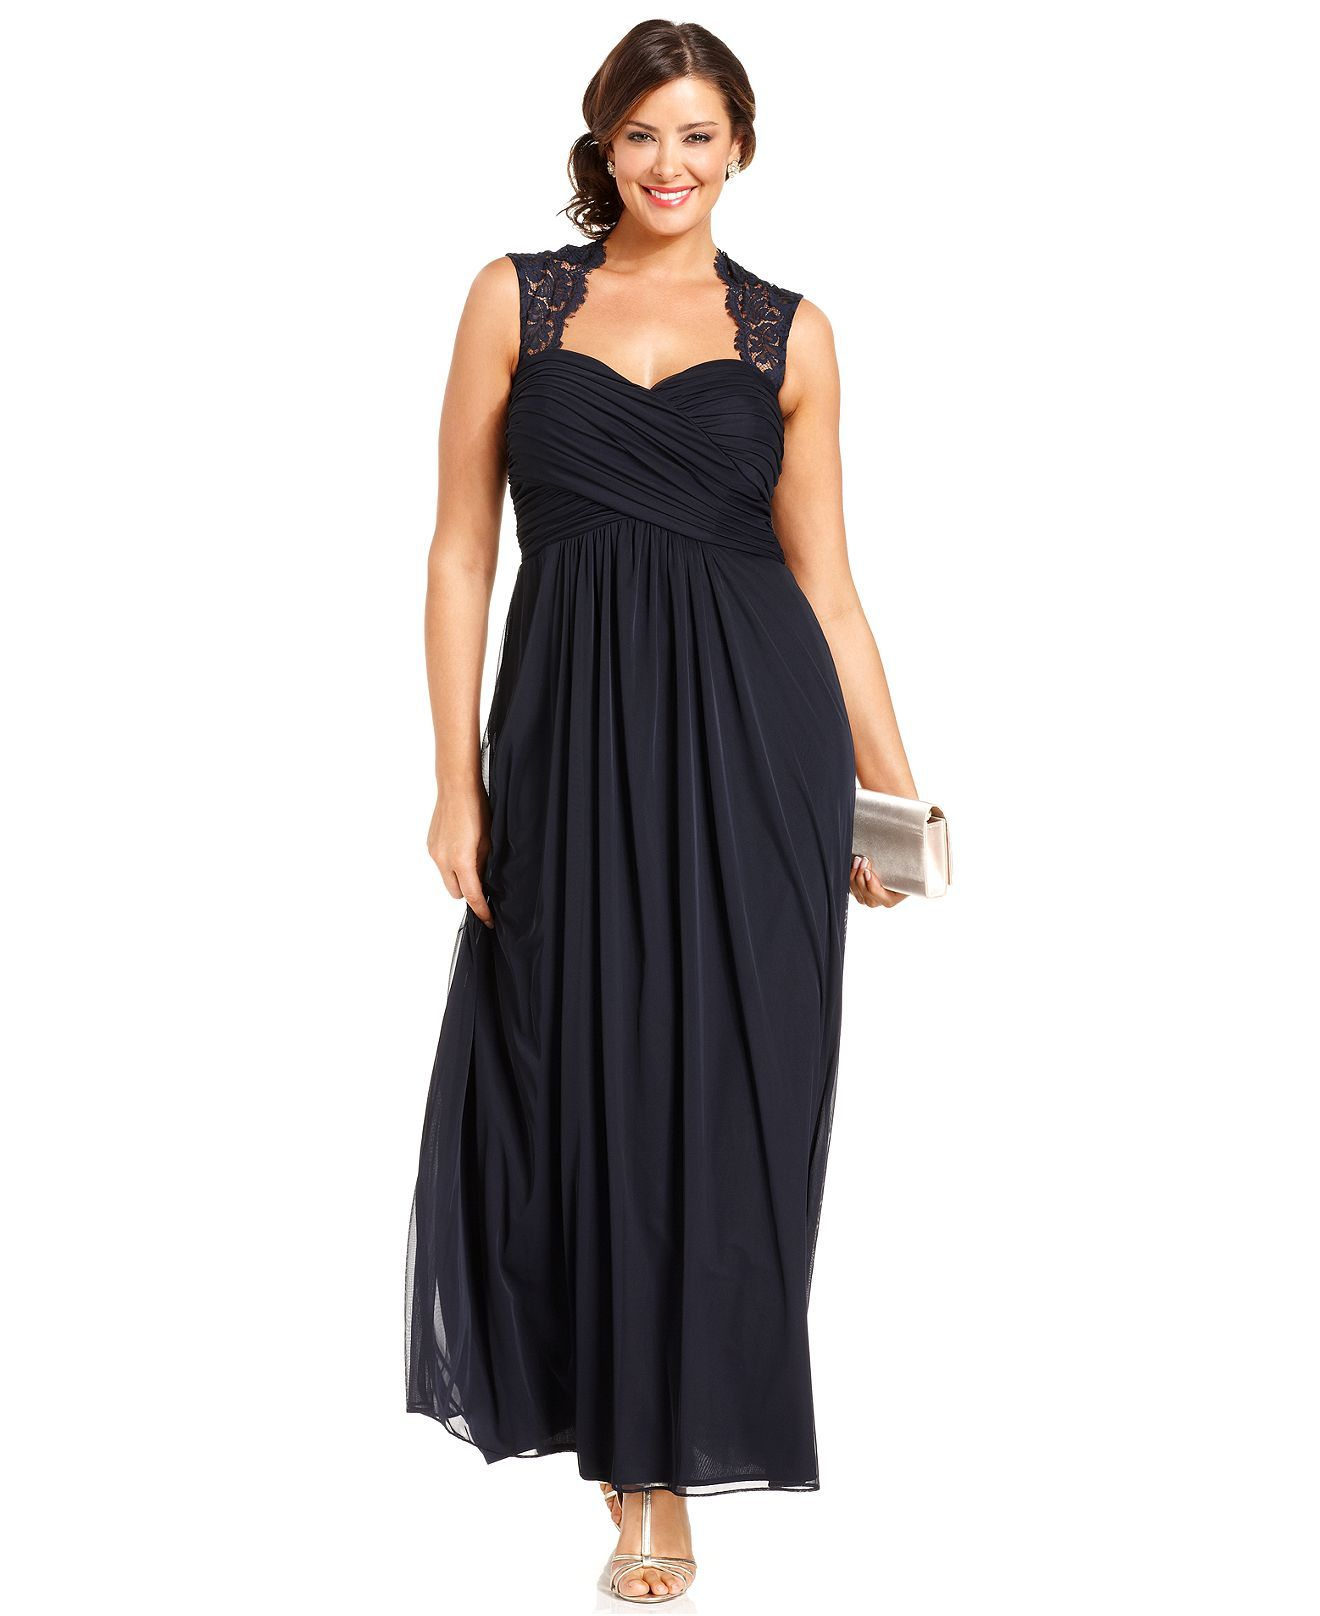 83d0b04752e Xscape Plus Size Dress